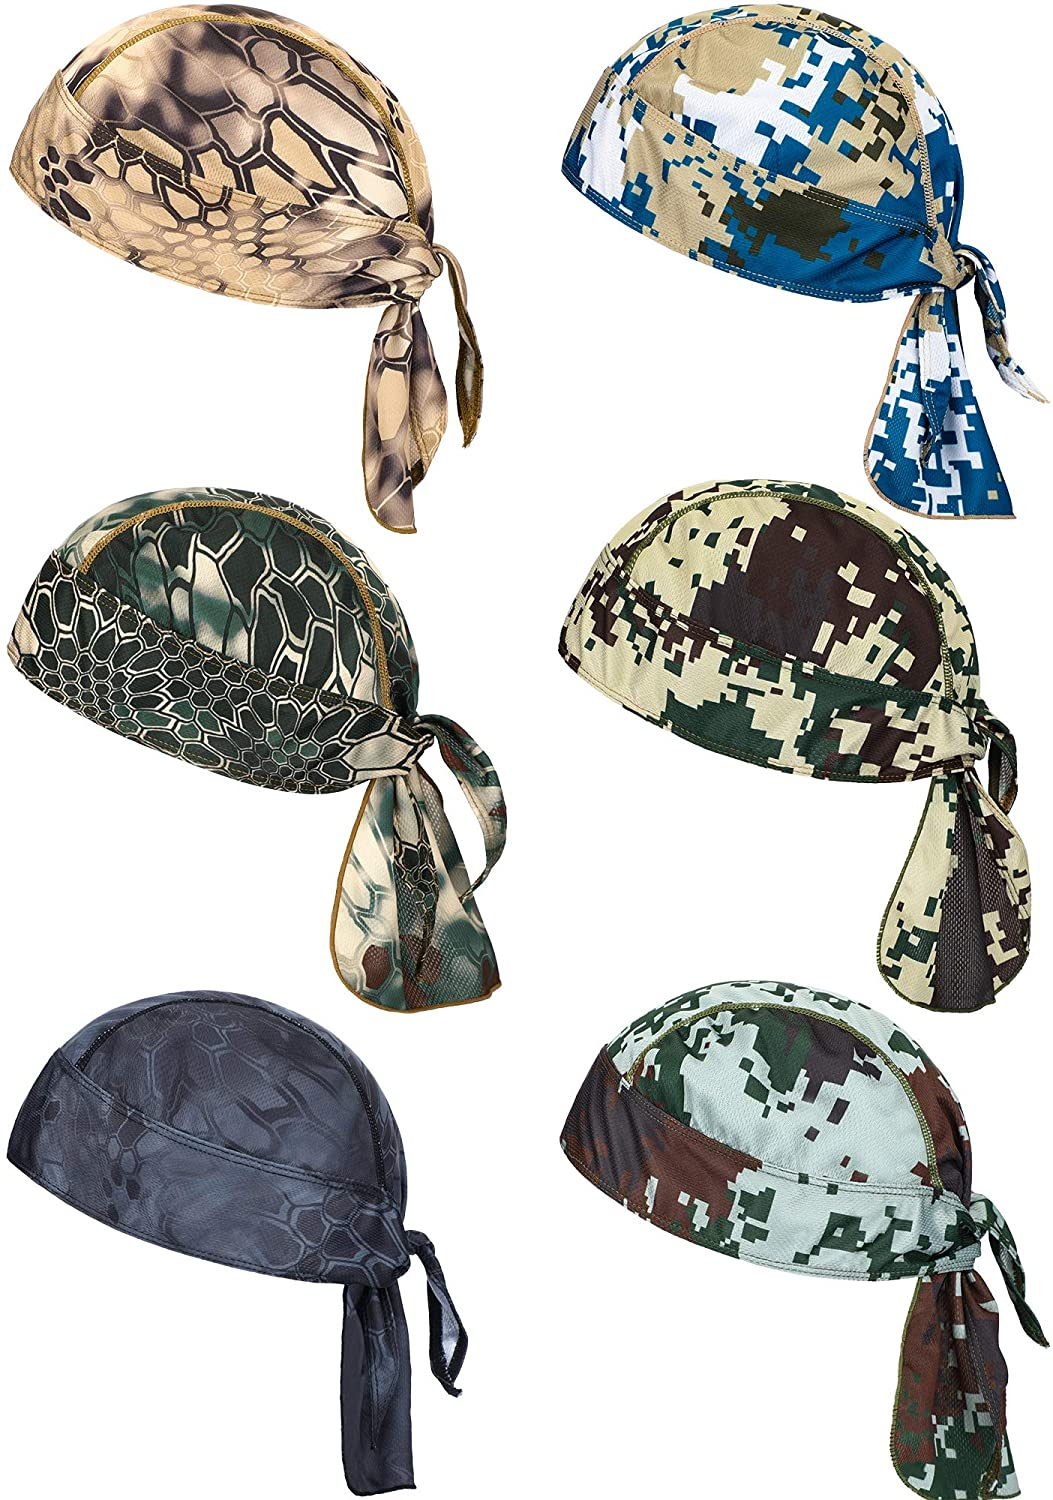 6 Pieces Max 48% OFF Sweat Wicking Beanie Breatha Helmet Liner 70% OFF Outlet Cap Skull